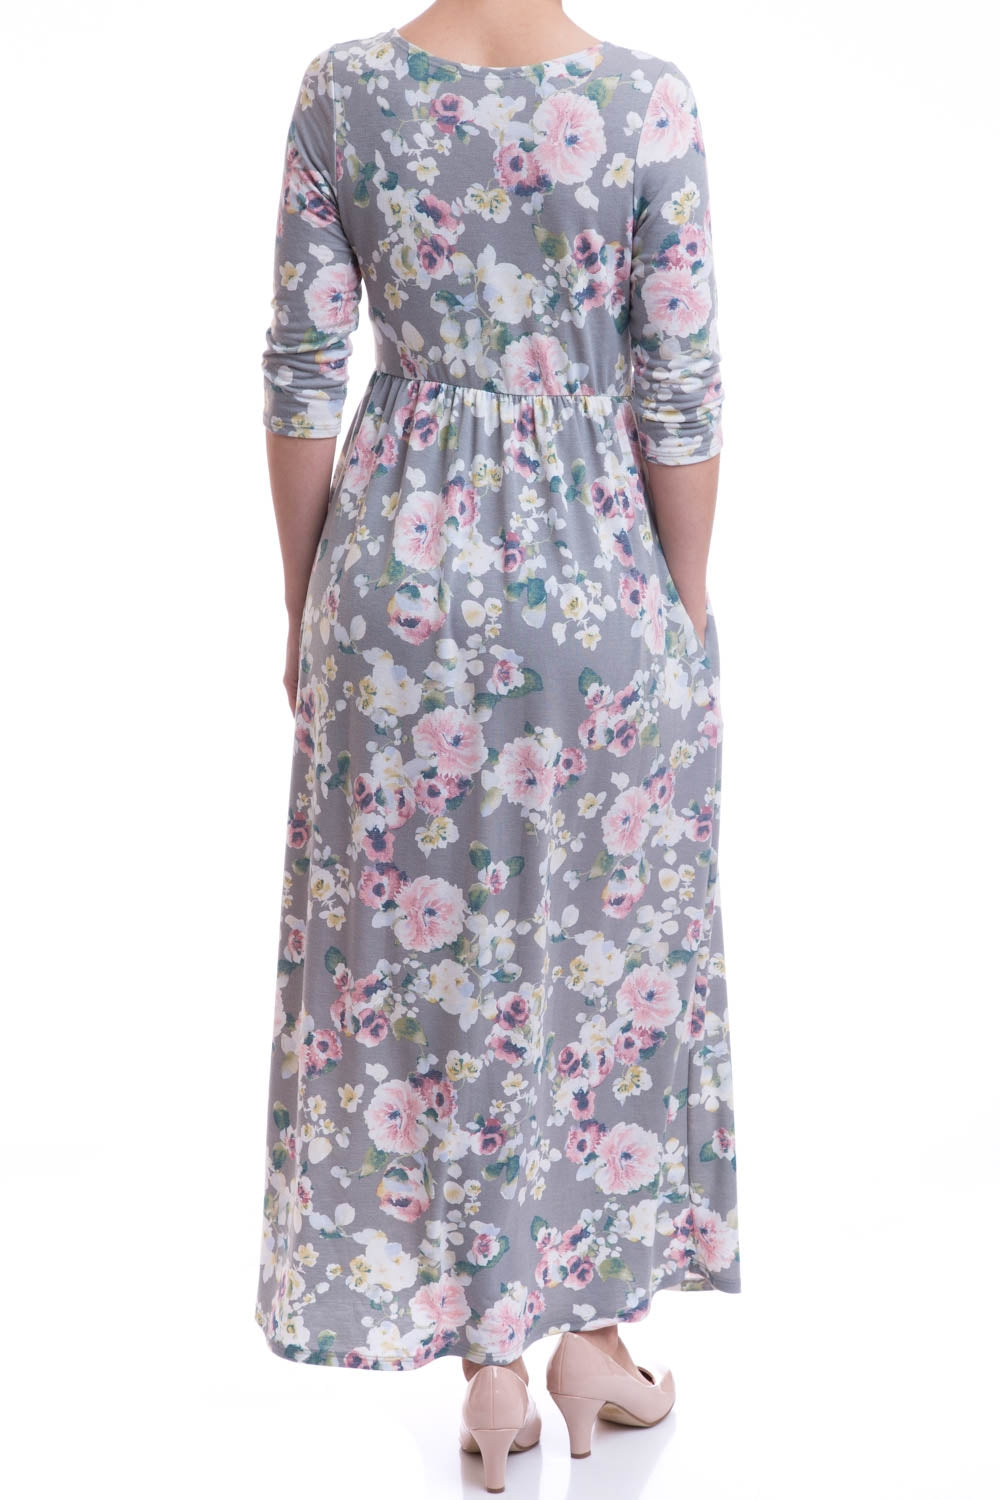 Type 2 Cozy Comfy Dress In Floral Smoke